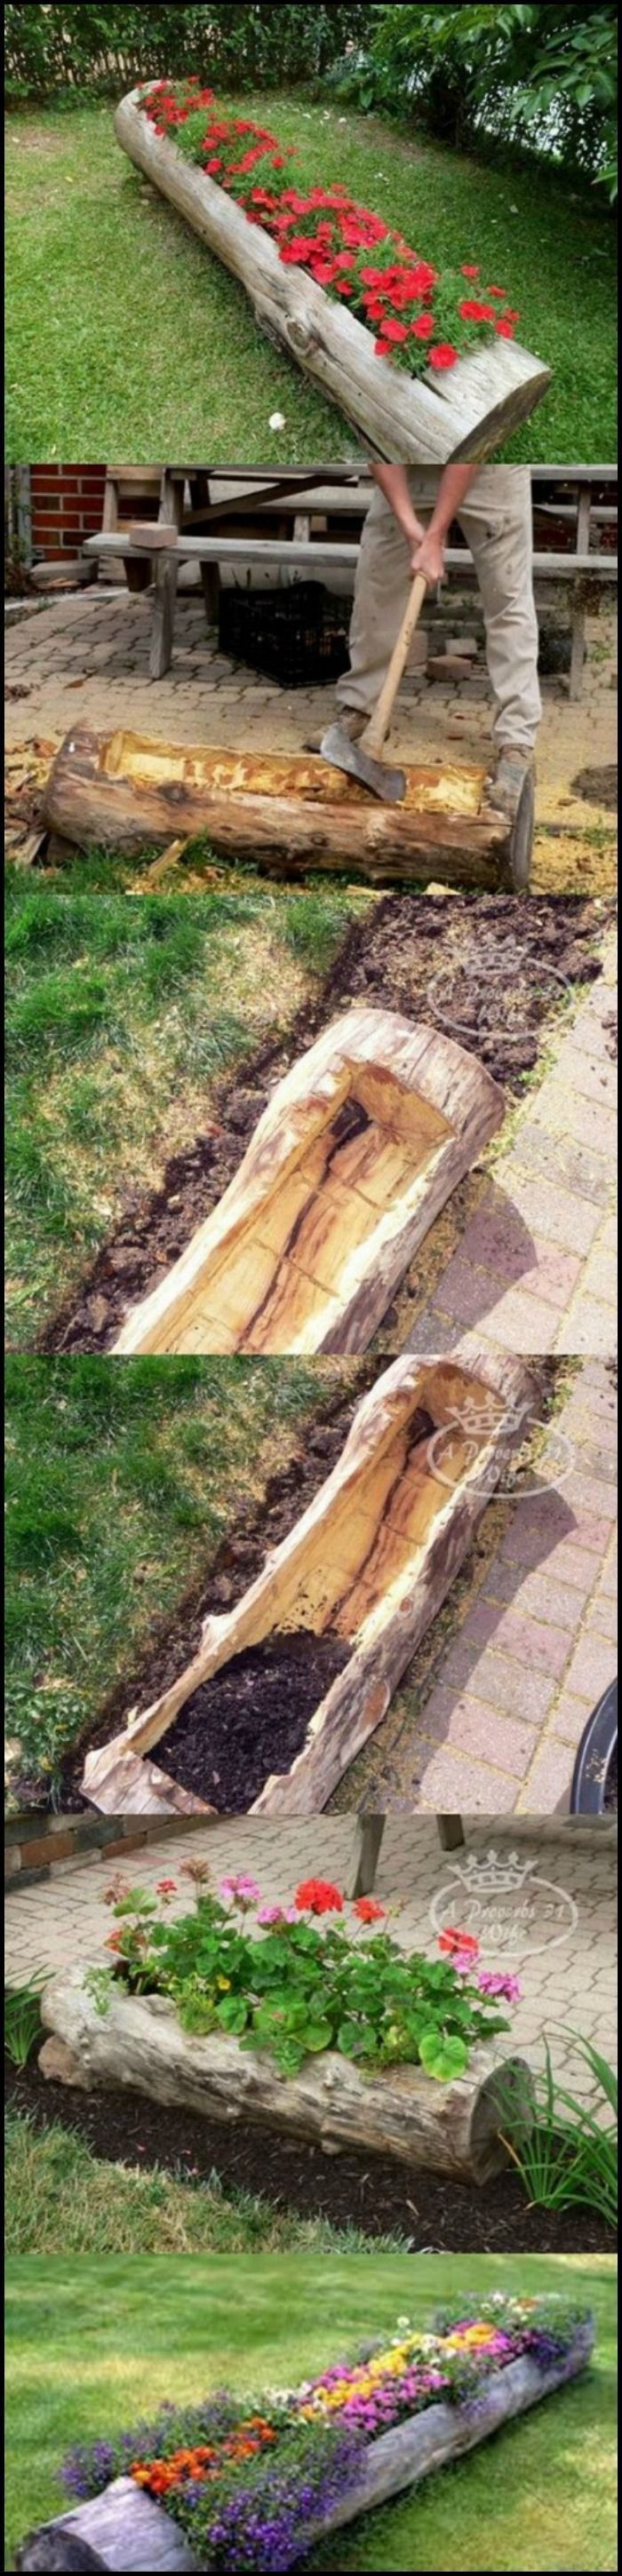 Marvelous 21 Amazing Tree Stump Ideas for the Garden https://ideacoration.co/2018/03/07/21-amazing-tree-stump-ideas-for-the-garden/ As the tree grows, you might have to replace the drainpipe with a bigger one.